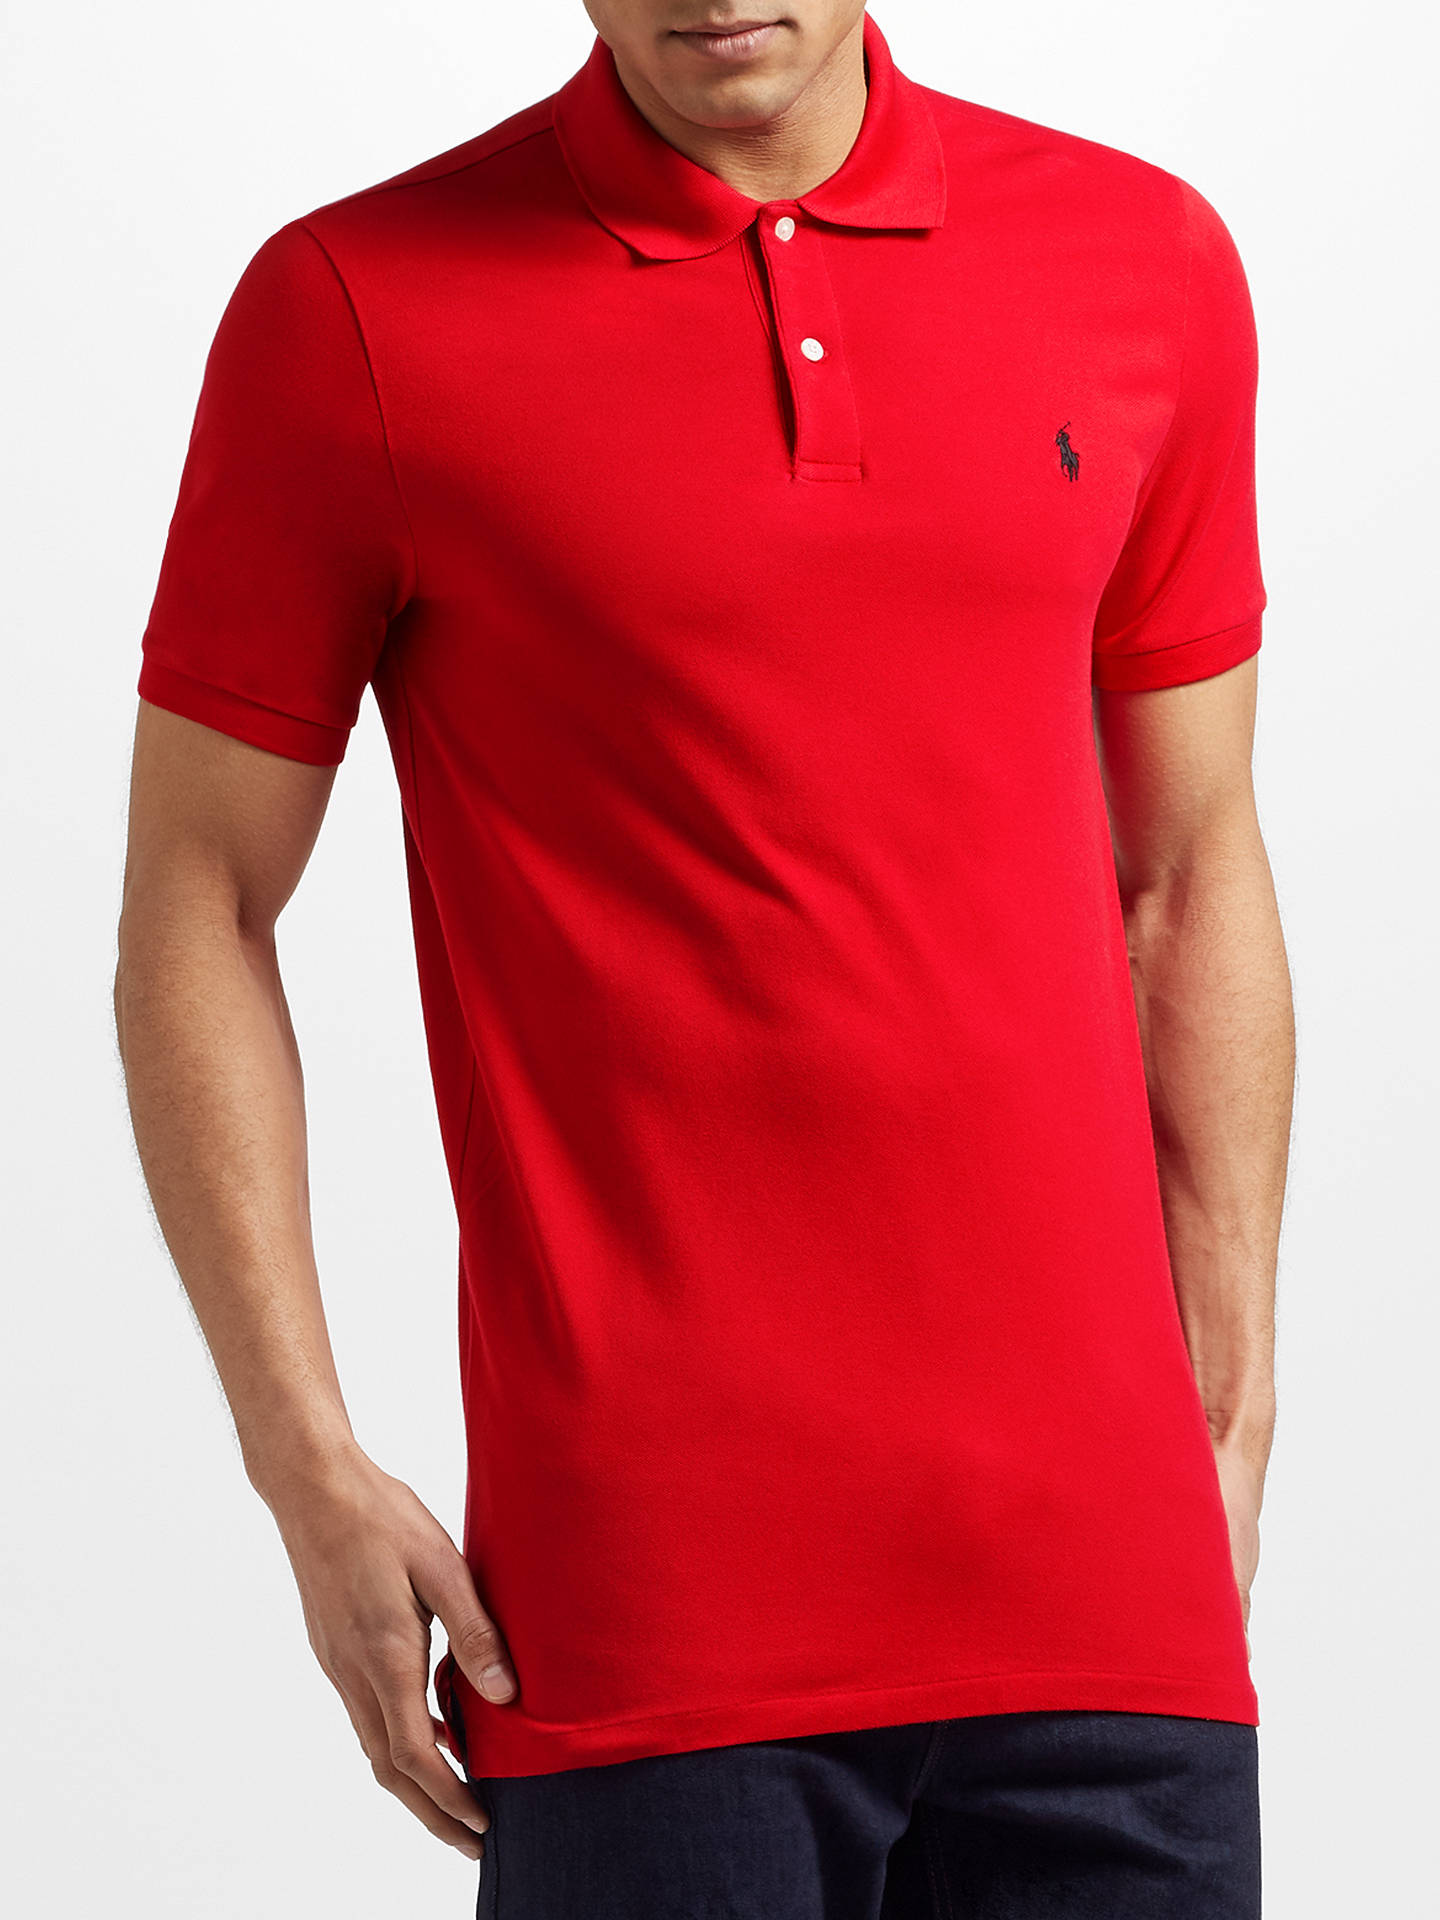 dd07500df Buy Polo Golf by Ralph Lauren Pro-Fit Polo Shirt, Red, S Online ...